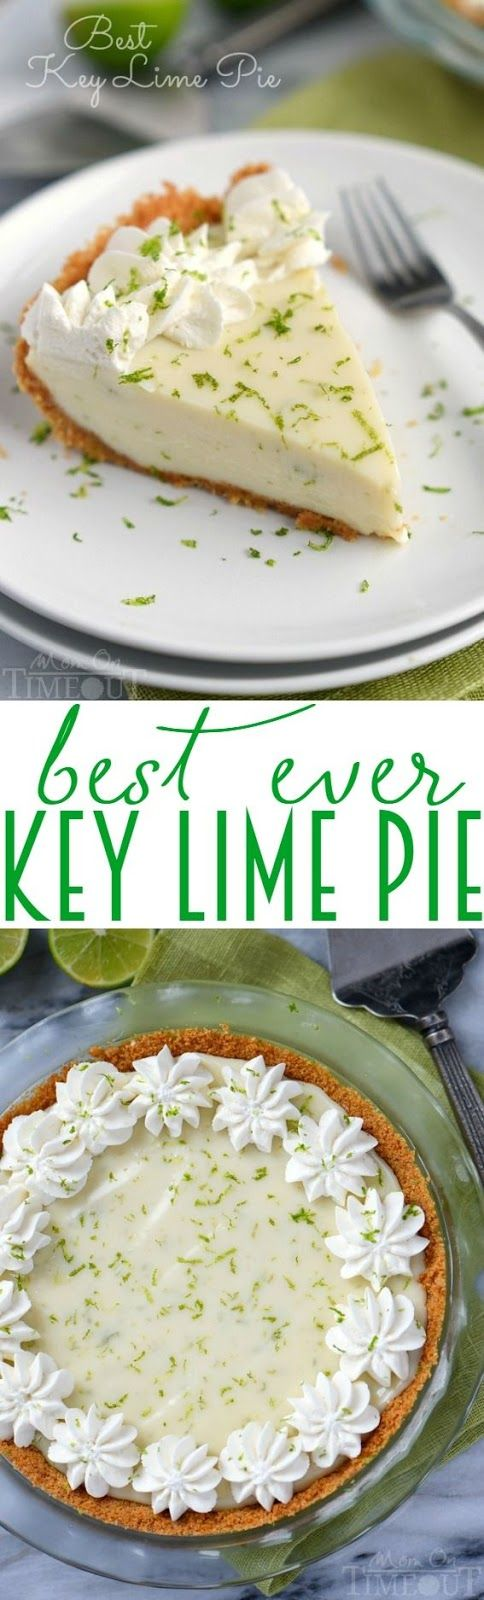 New Food & drink: Best Key Lime Pie